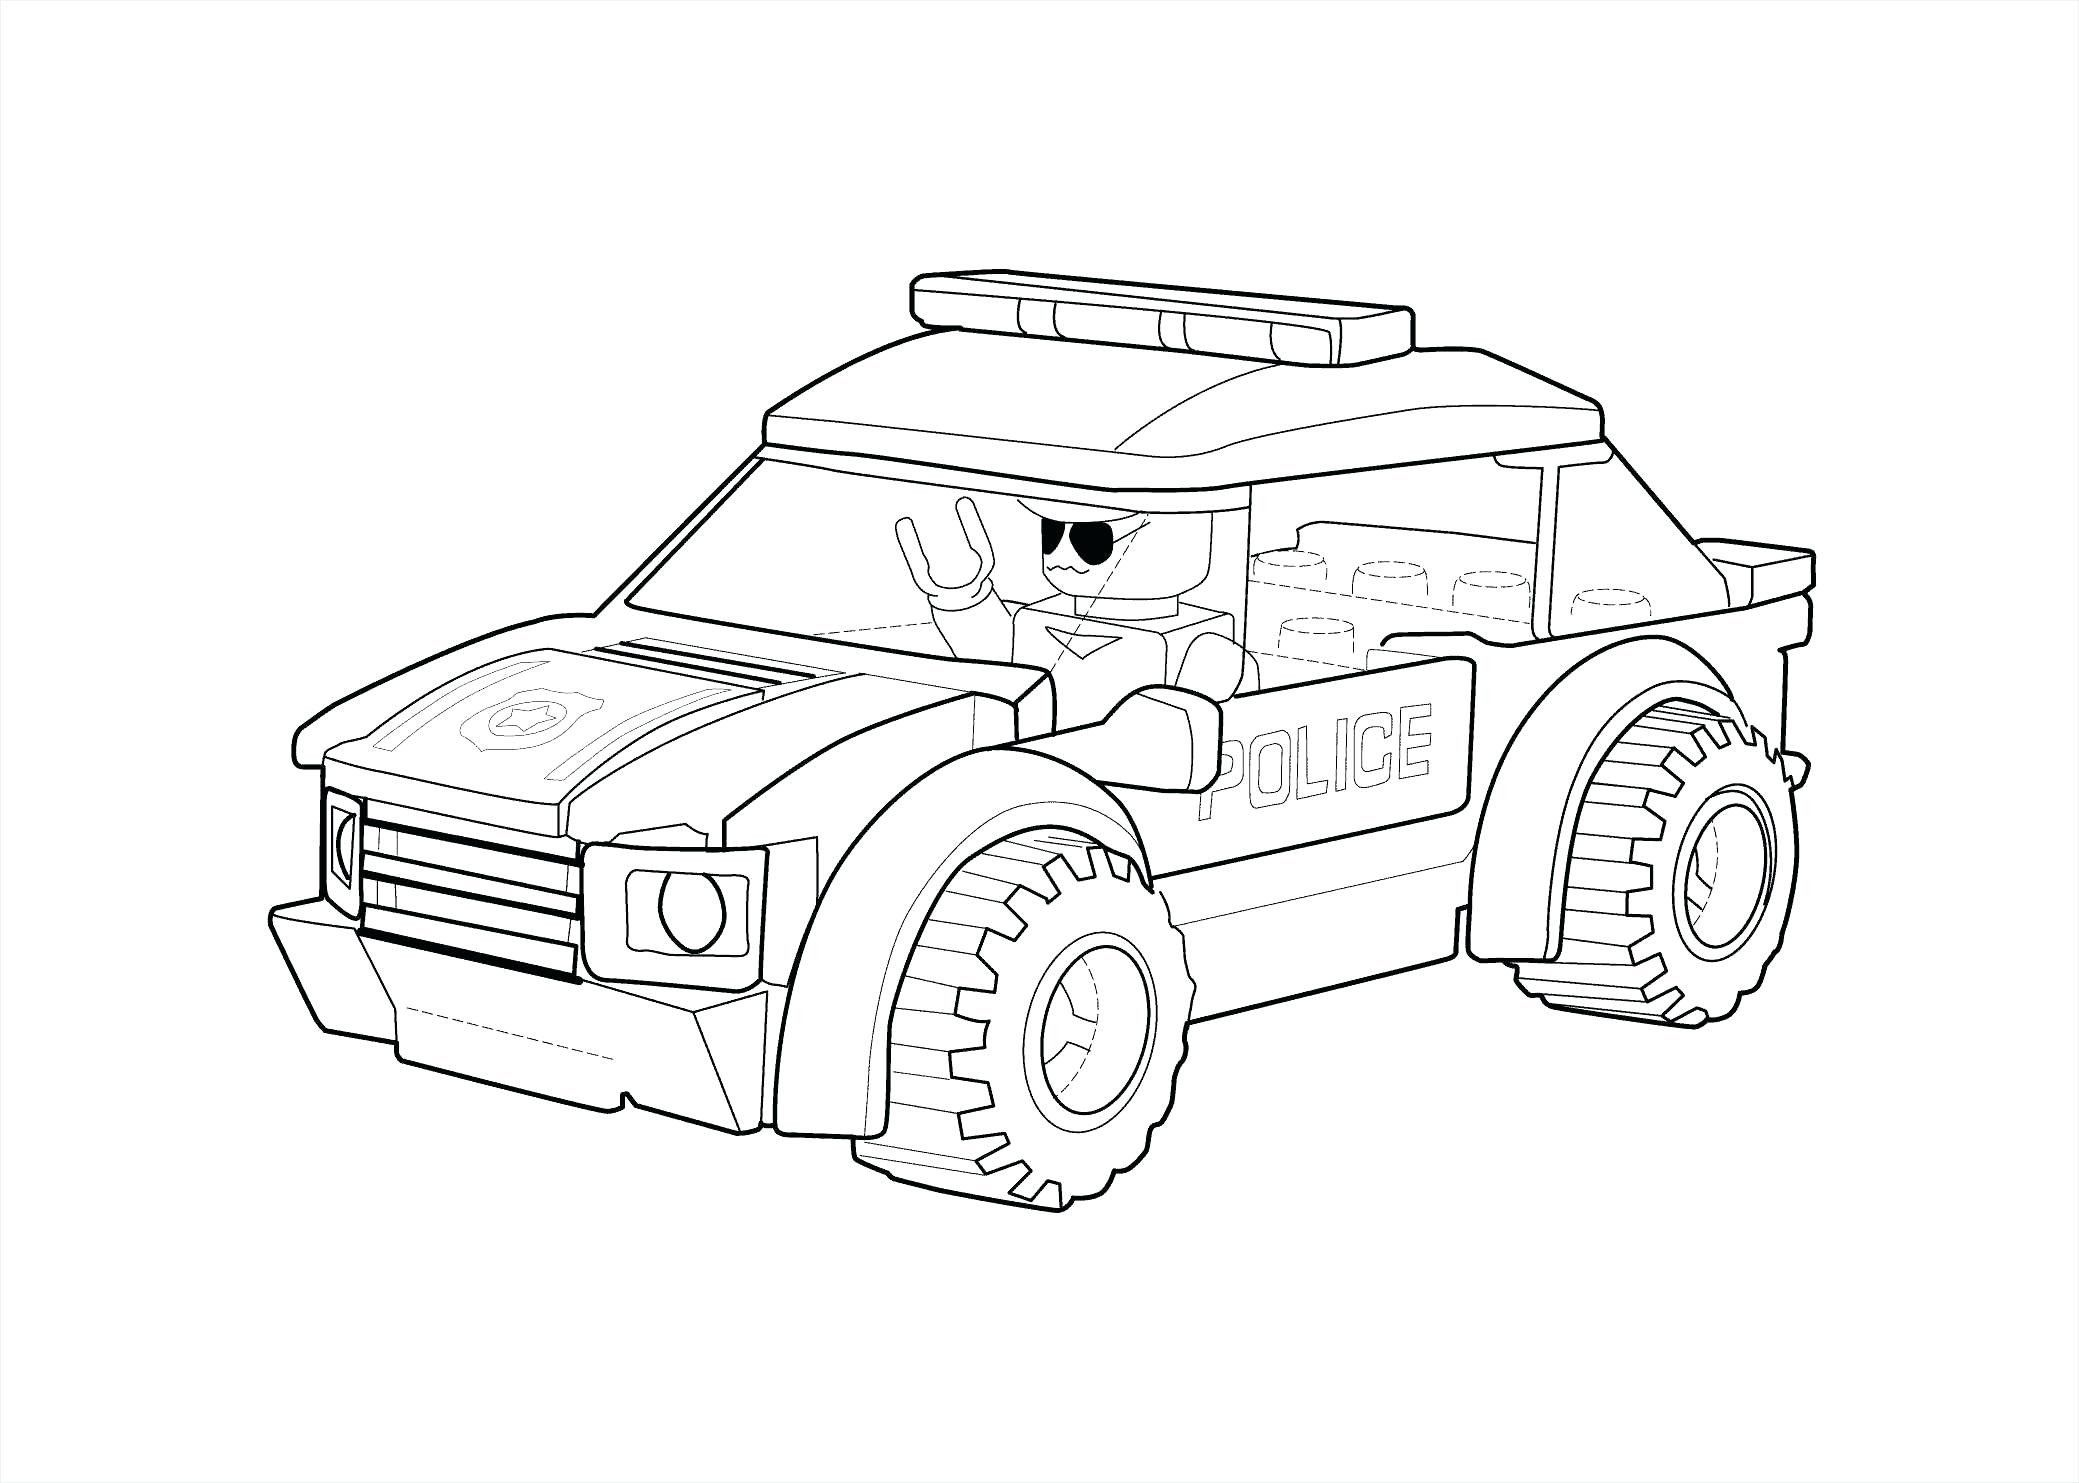 Police Car Coloring Pages Unique Derby Coloring Pages Chamberprint In 2020 Lego Coloring Batman Coloring Pages Lego Coloring Pages